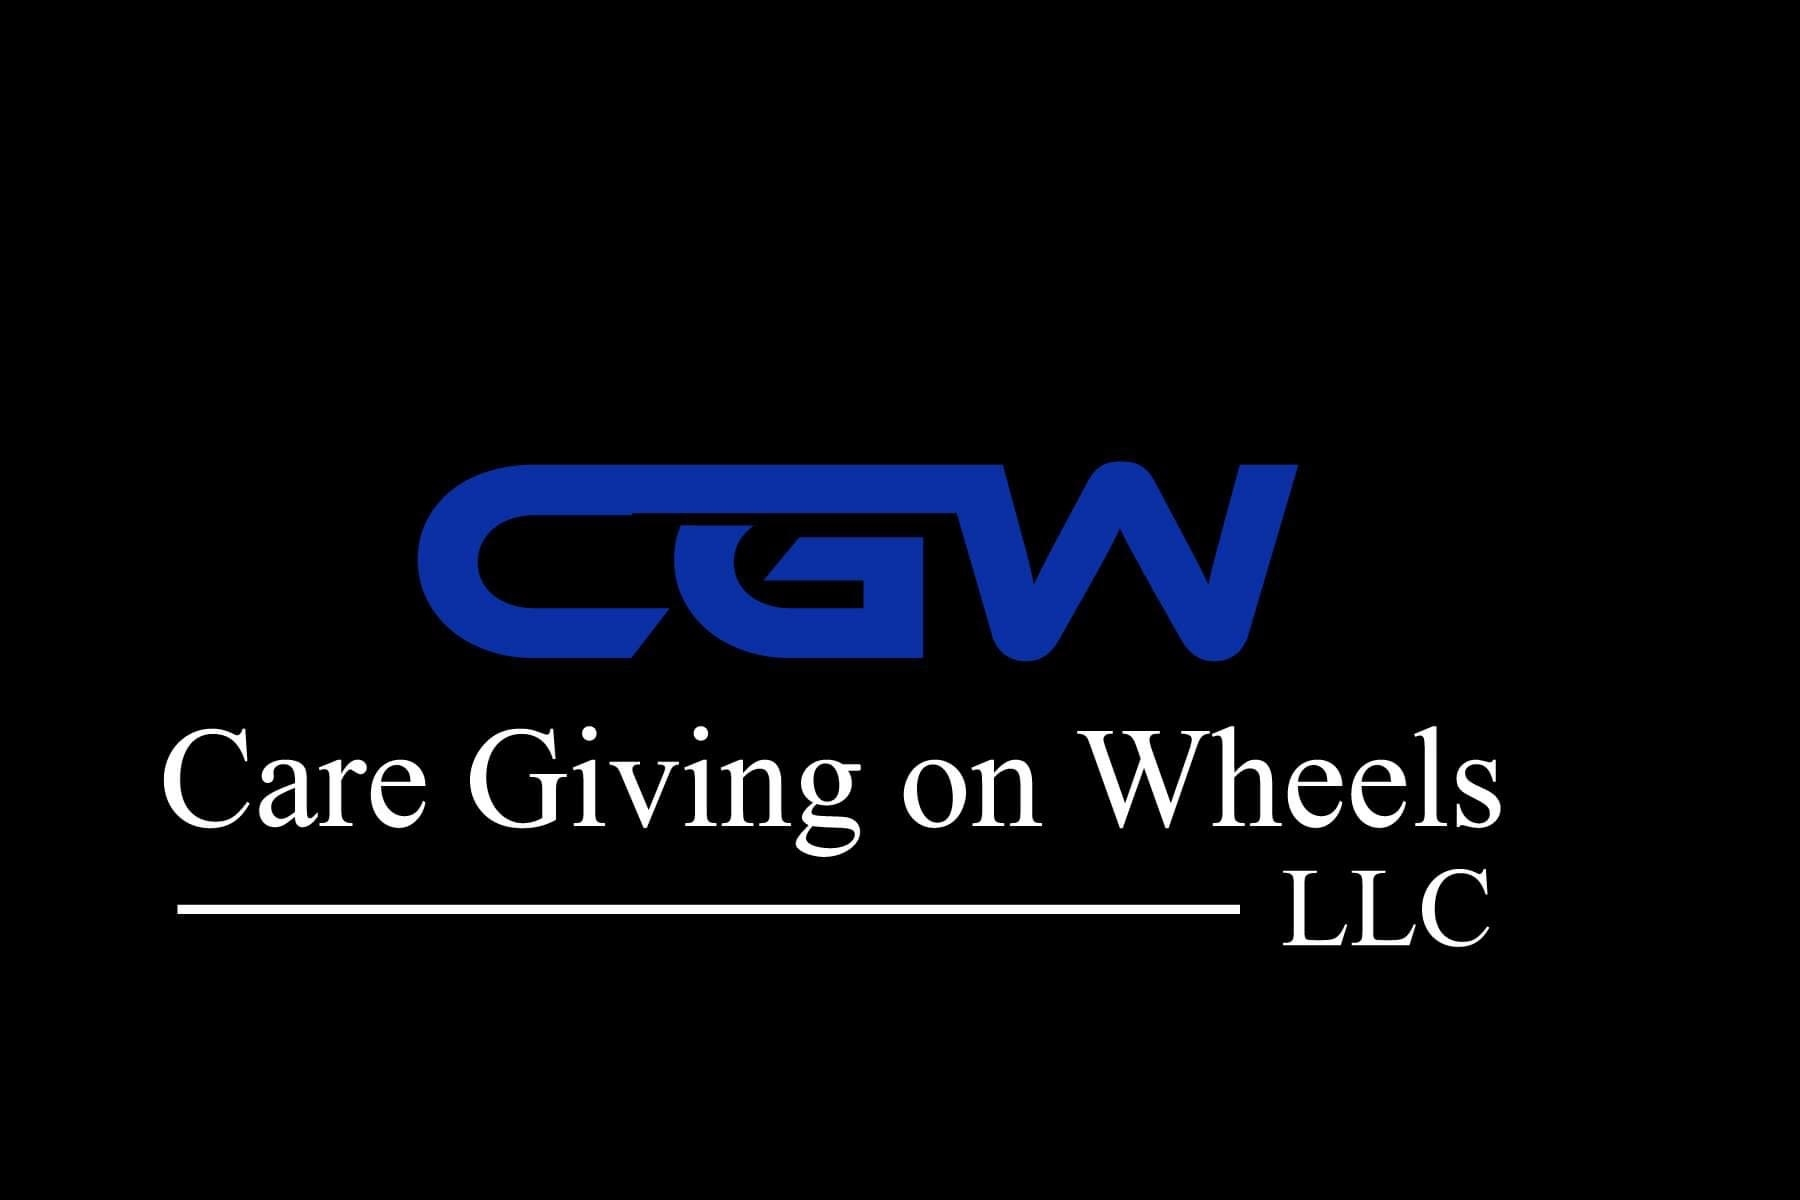 Care Giving on Wheels